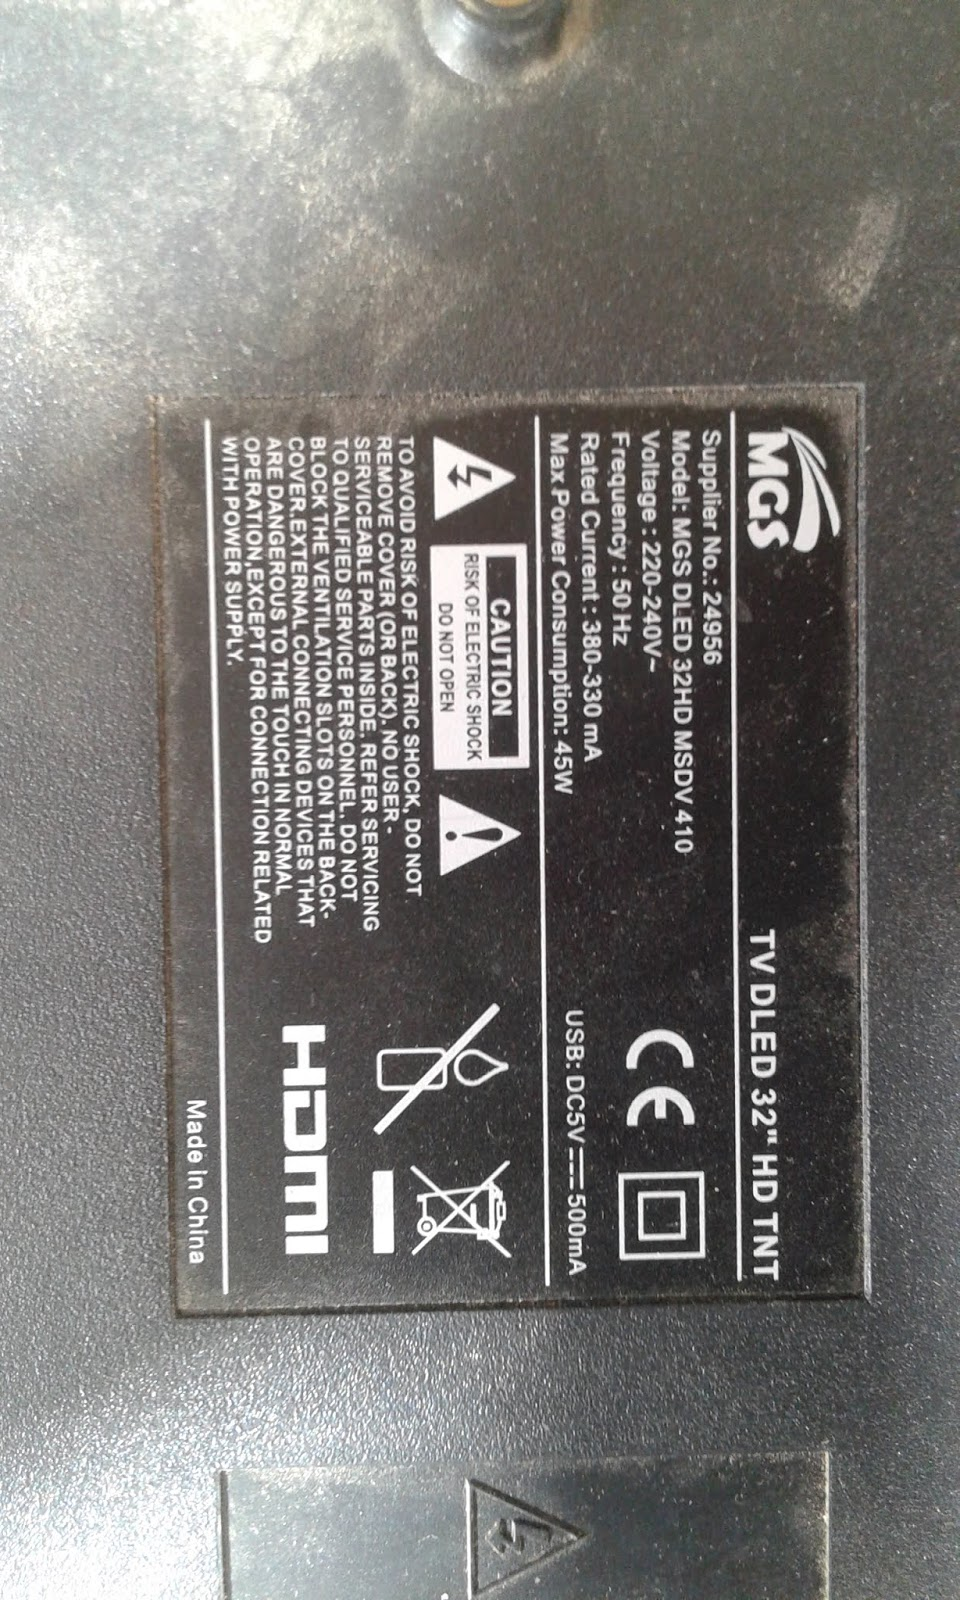 dump MGS dled tv32 hd tnt - flash eprom-electronic